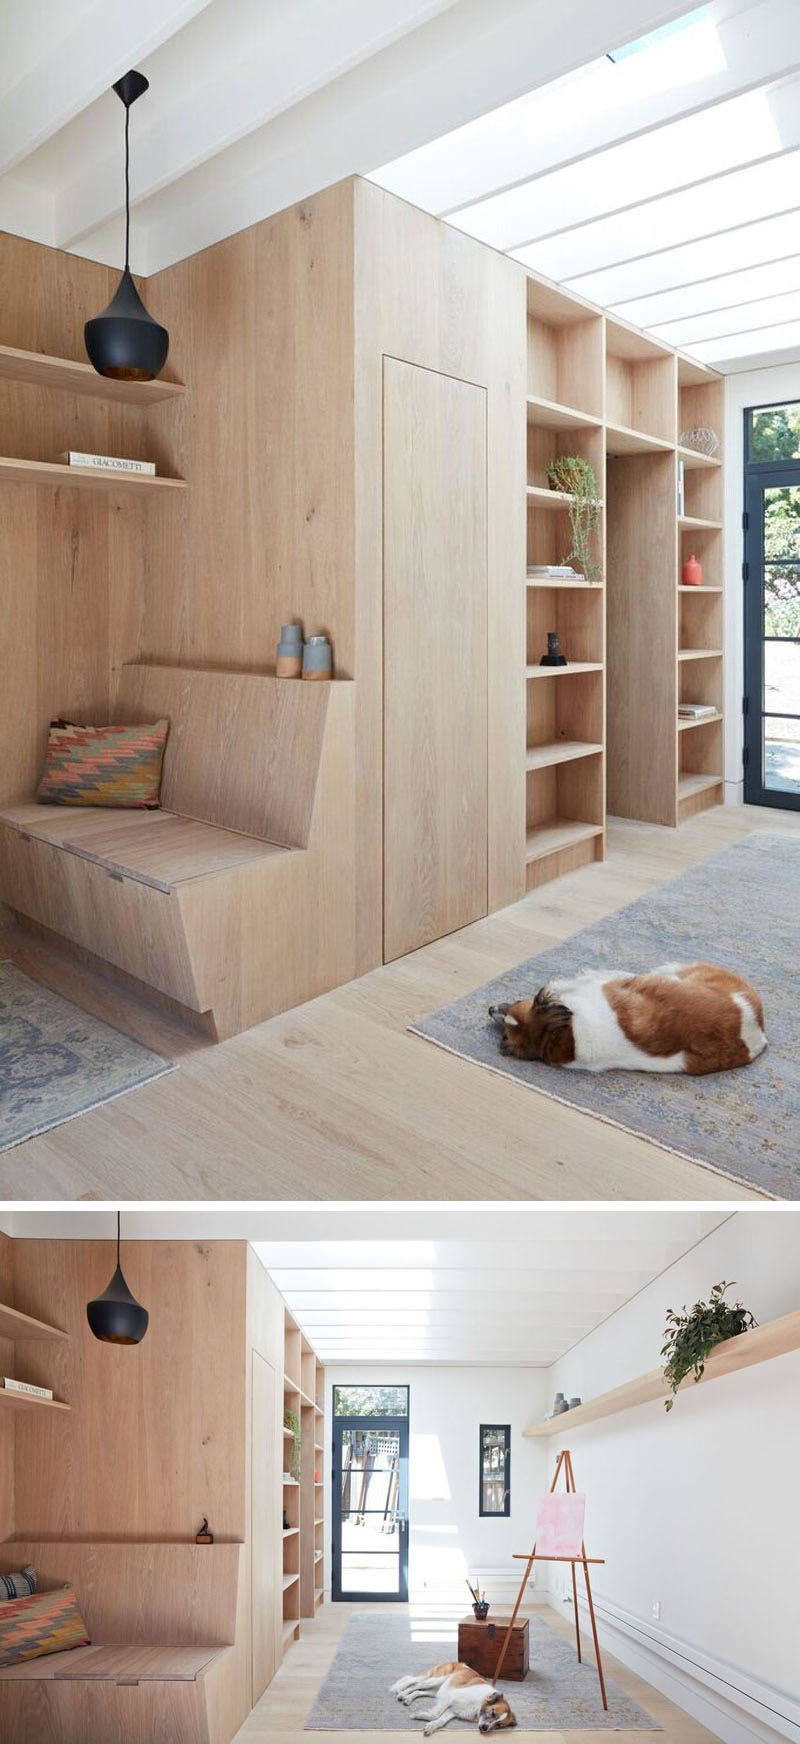 This small backyard studio features walls, shelving and furniture made of white oak.